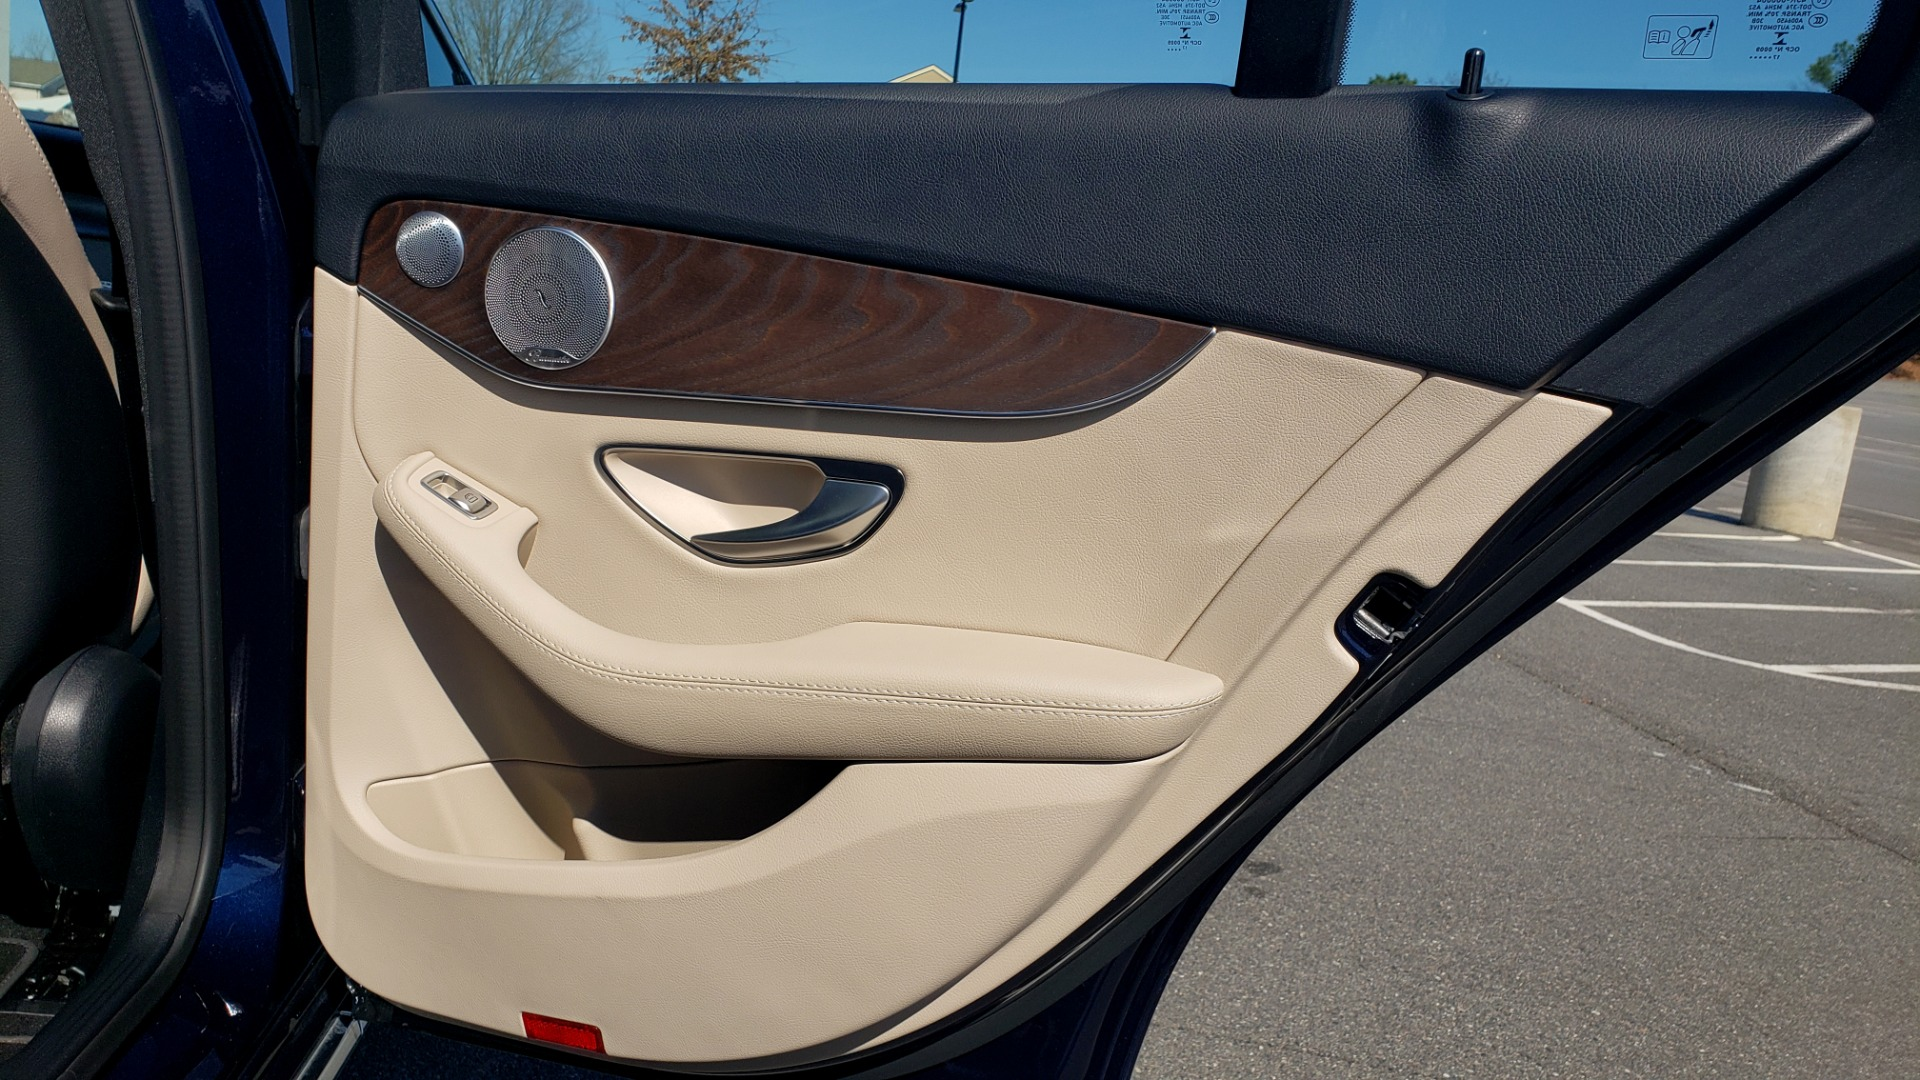 Used 2018 Mercedes-Benz C-CLASS C 300 PREMIUM / SUNROOF / BURMESTER / BSM / REARVIEW for sale $23,995 at Formula Imports in Charlotte NC 28227 61